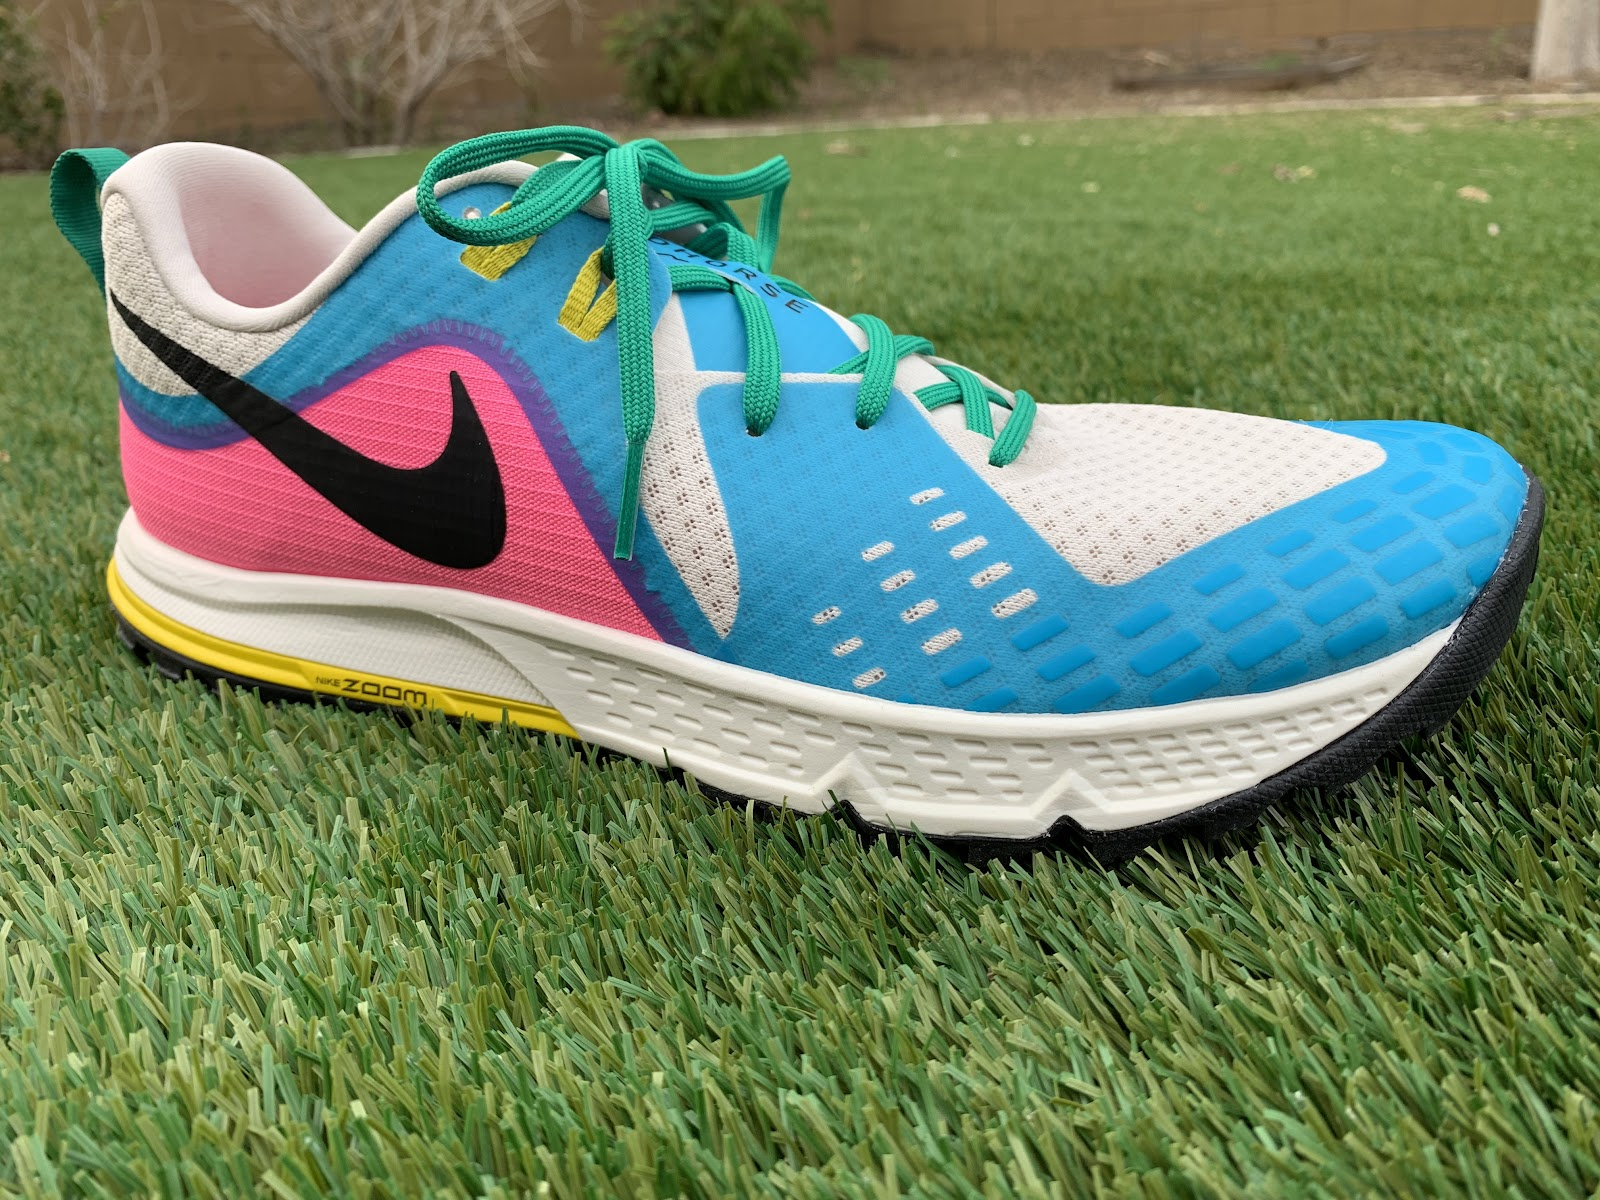 edd74f5c6d067 Road Trail Run  Nike Air Zoom Wildhorse 5 Review - Finally a new ...